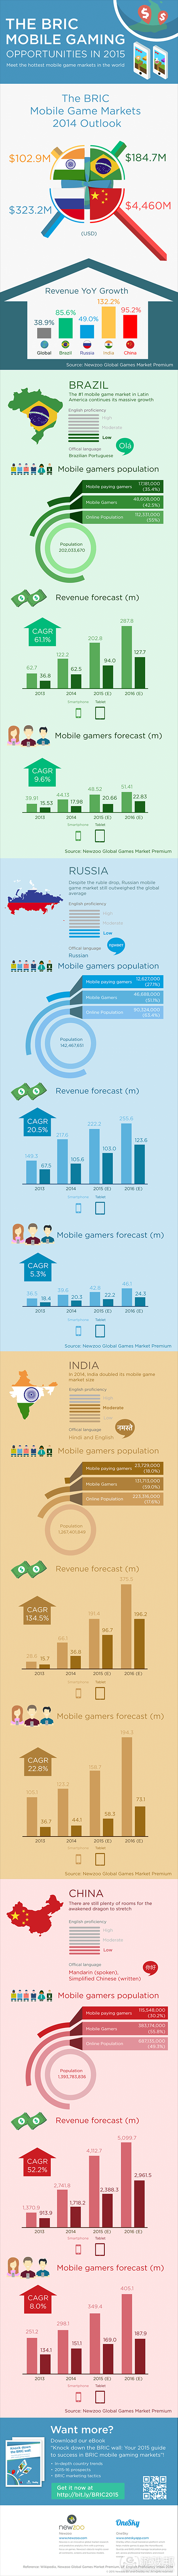 BRIC-mobile-gaming-2015-infographic(from Newzoo)